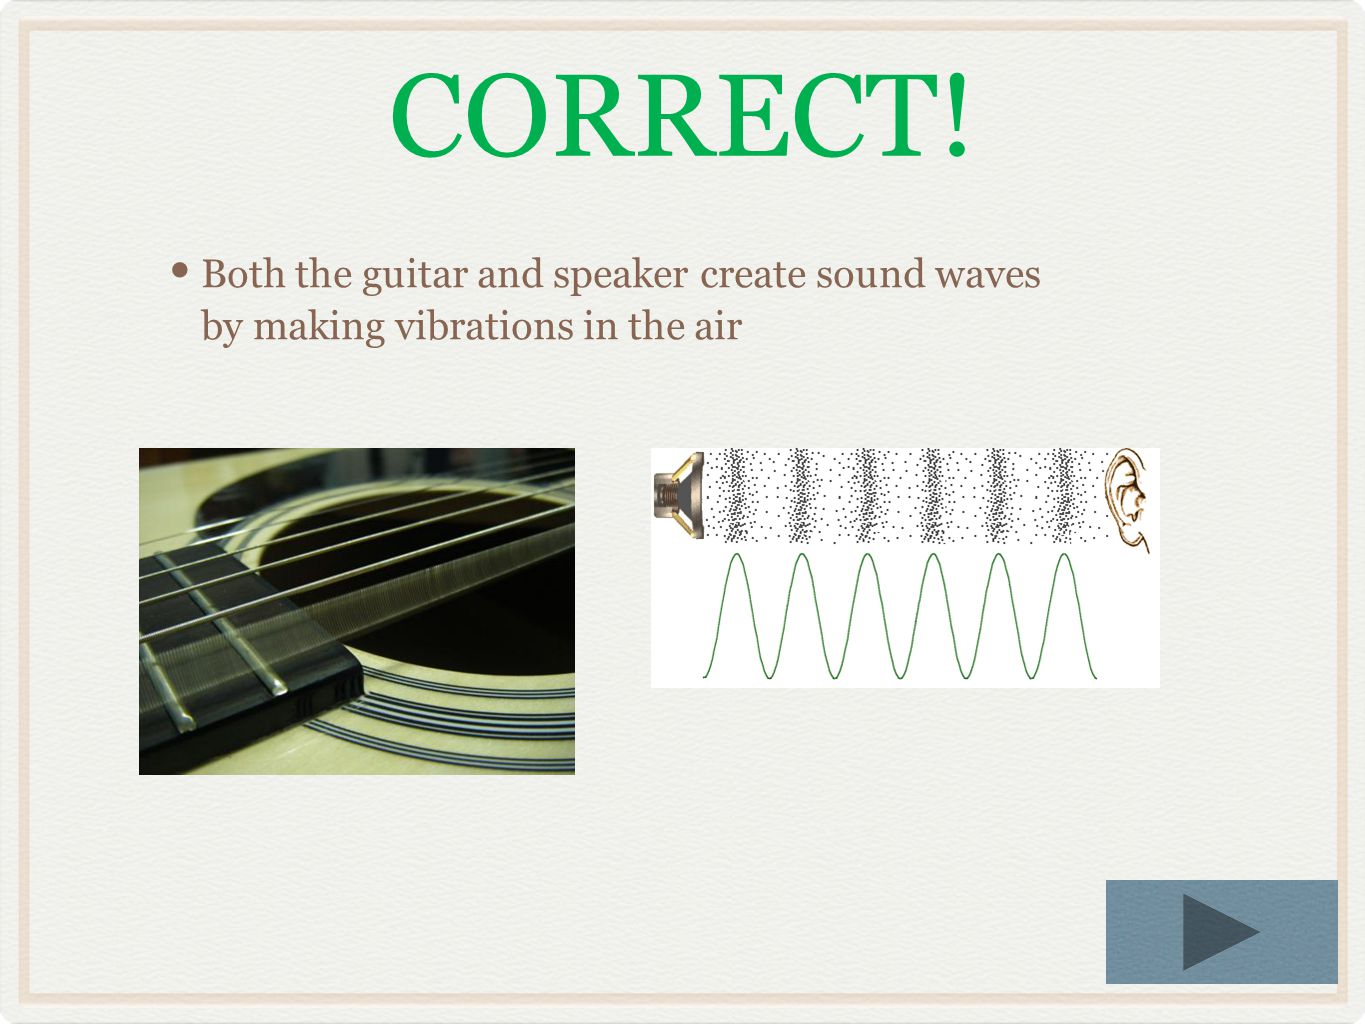 Both the guitar and speaker create sound waves by making vibrations in the air